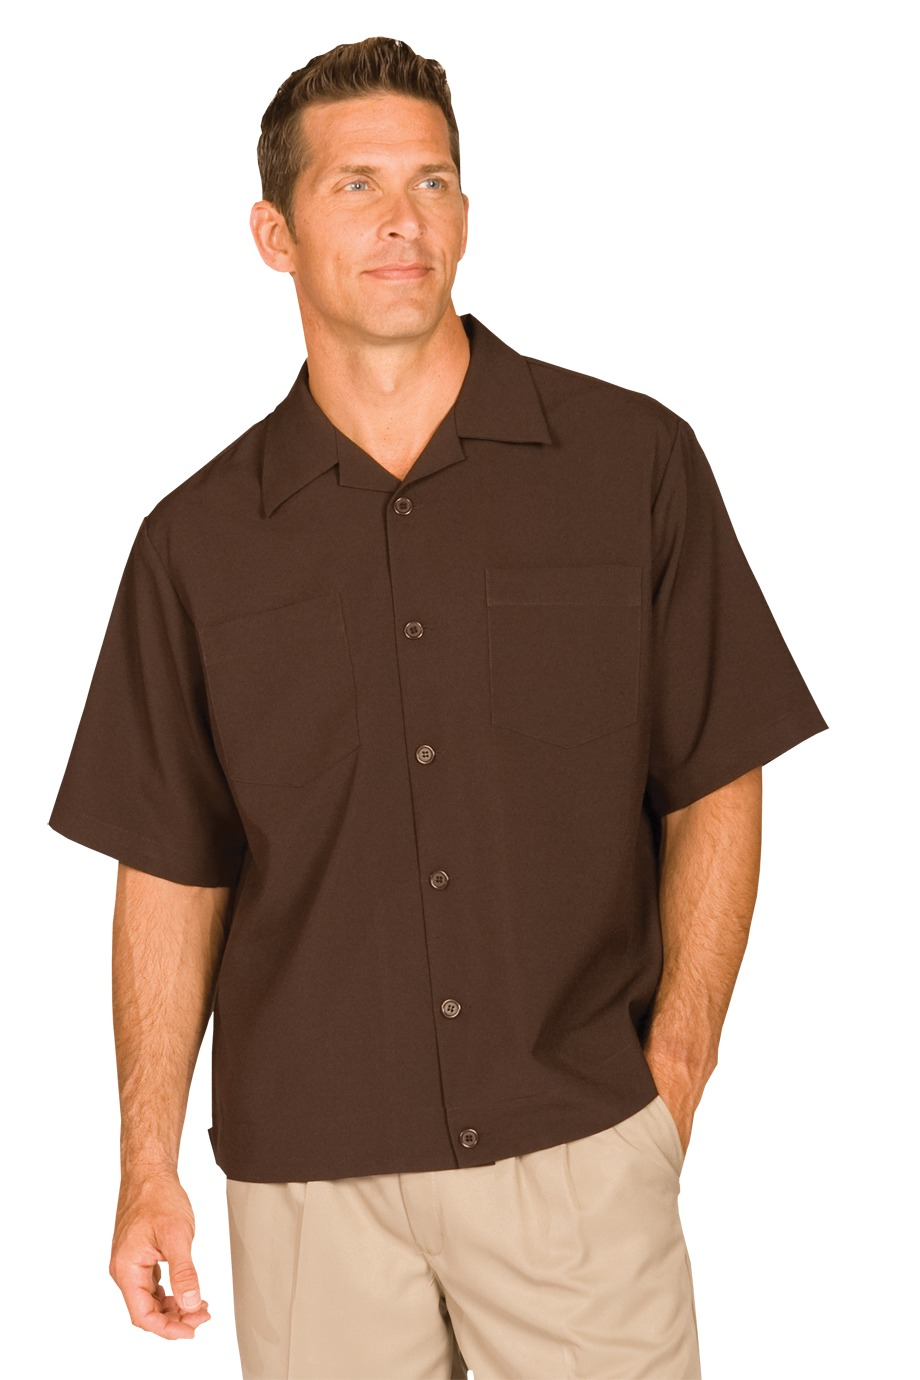 Edwards Garment 4279 - Men's Servive Jack Shirt